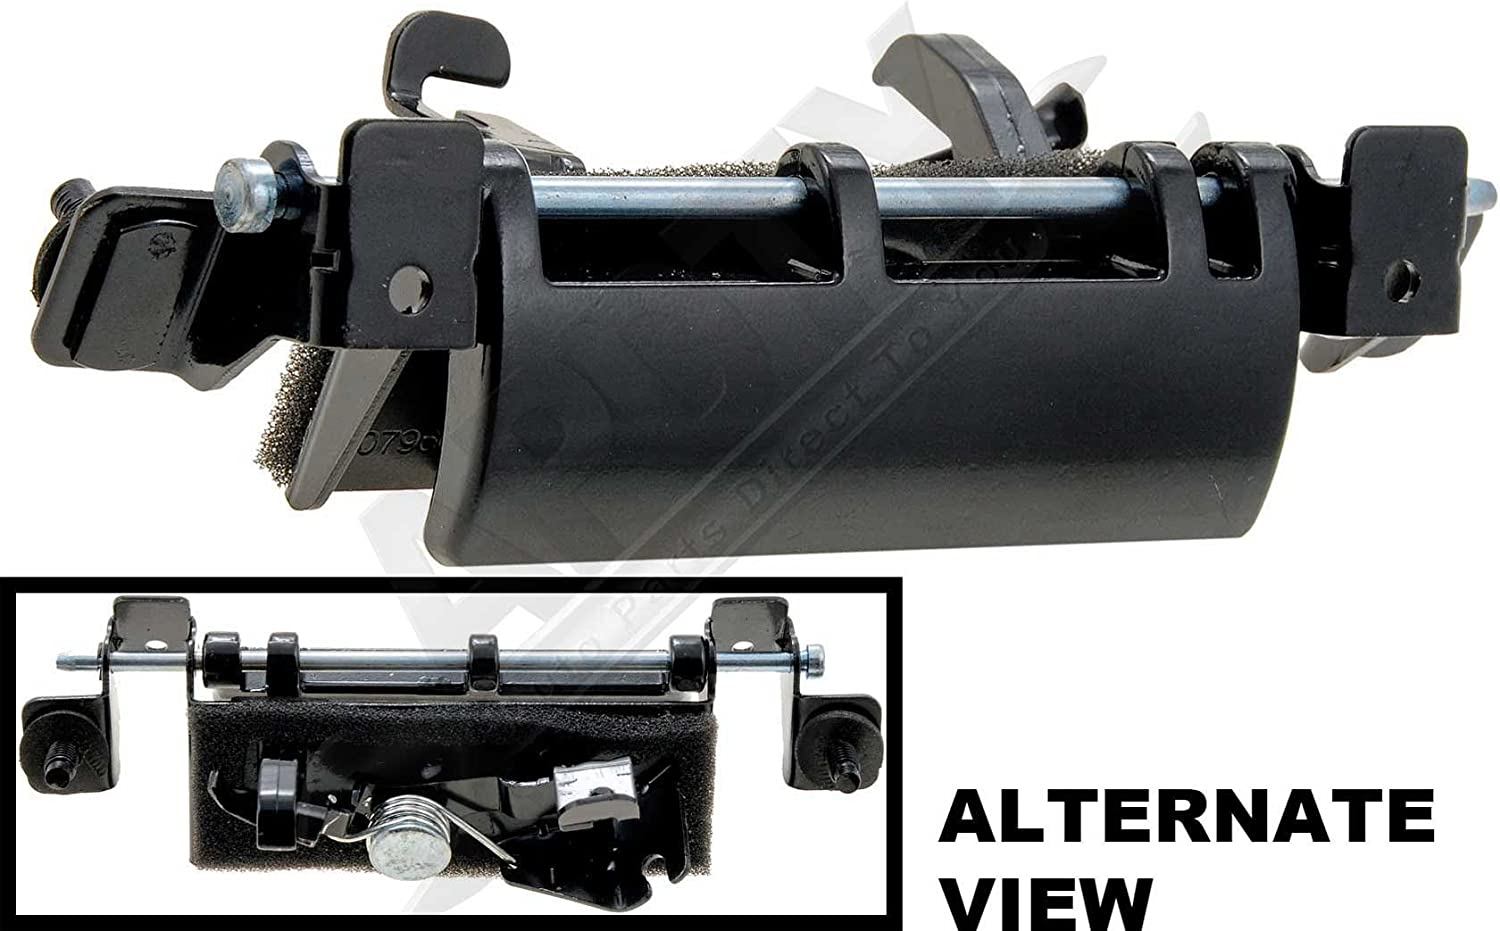 Upgraded Metal Bracket Design APDTY 80711 Rear Hatch Liftgate Latch Handle Fits 1998-2003 Toyota Sienna or 2001-2007 Sequoia